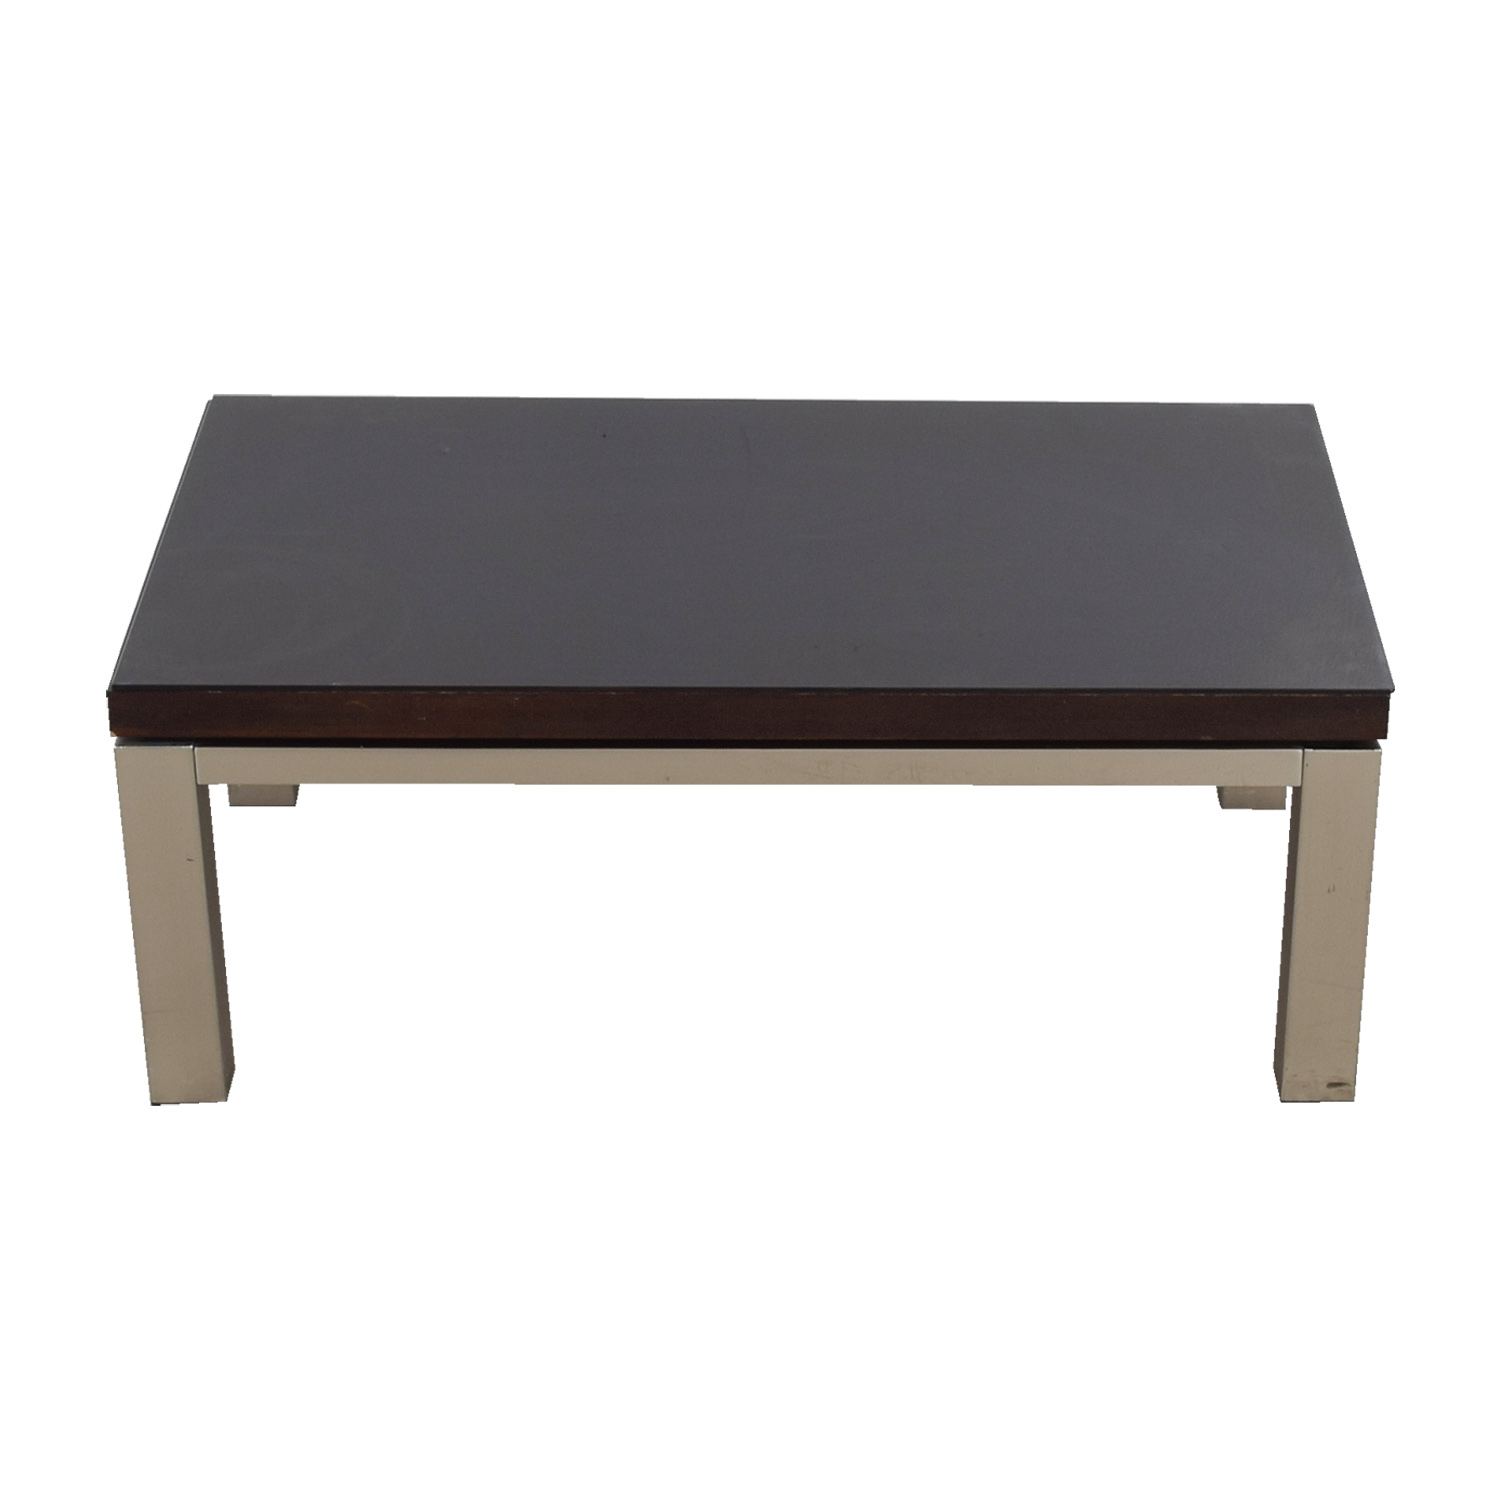 Wood and Chrome Rectangular Coffee Table / Coffee Tables